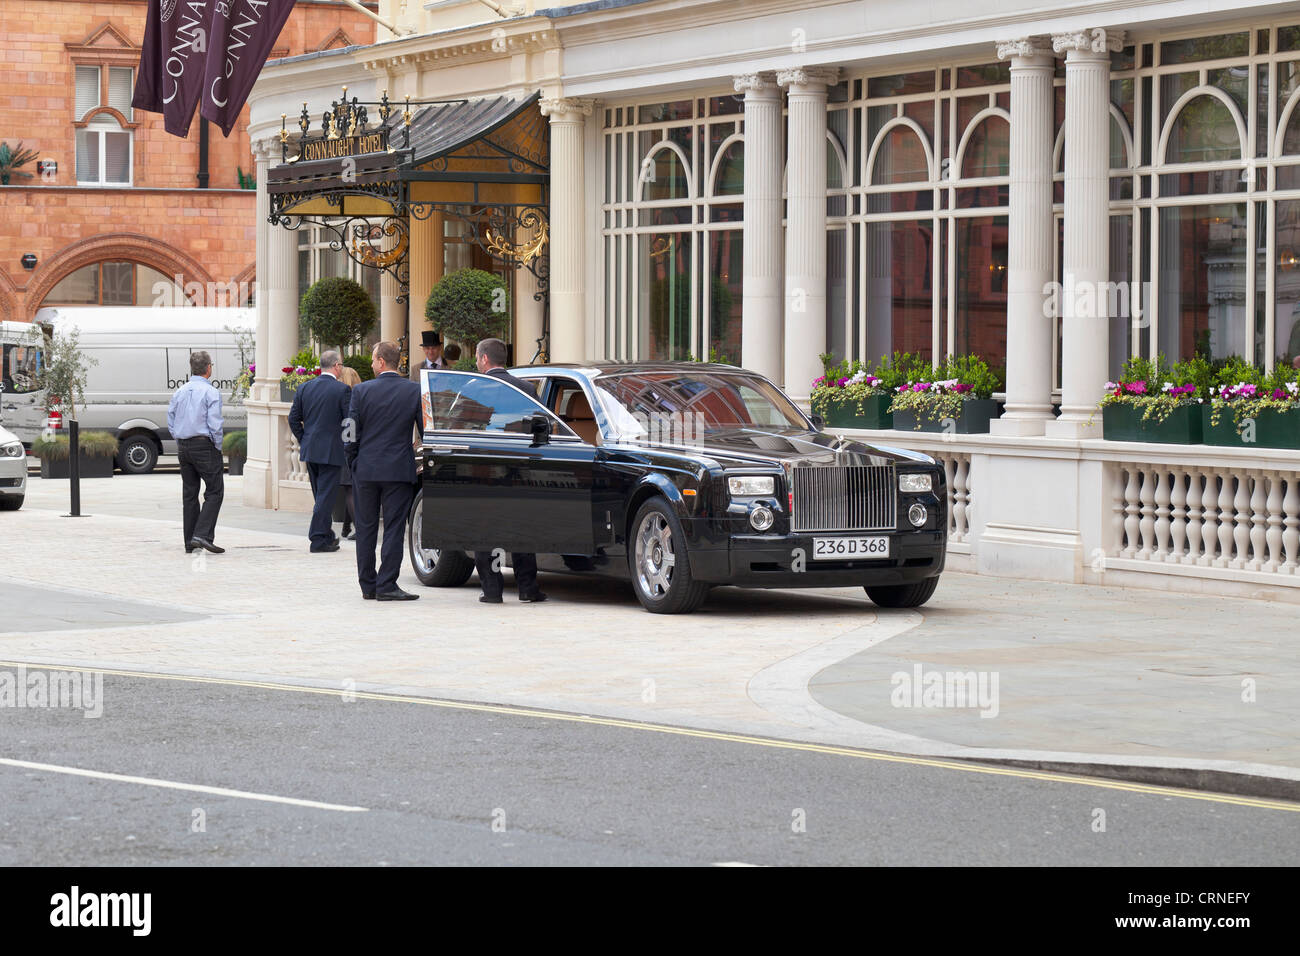 Rolls Royce parked outside the Connaught hotel in London, England - Stock Image